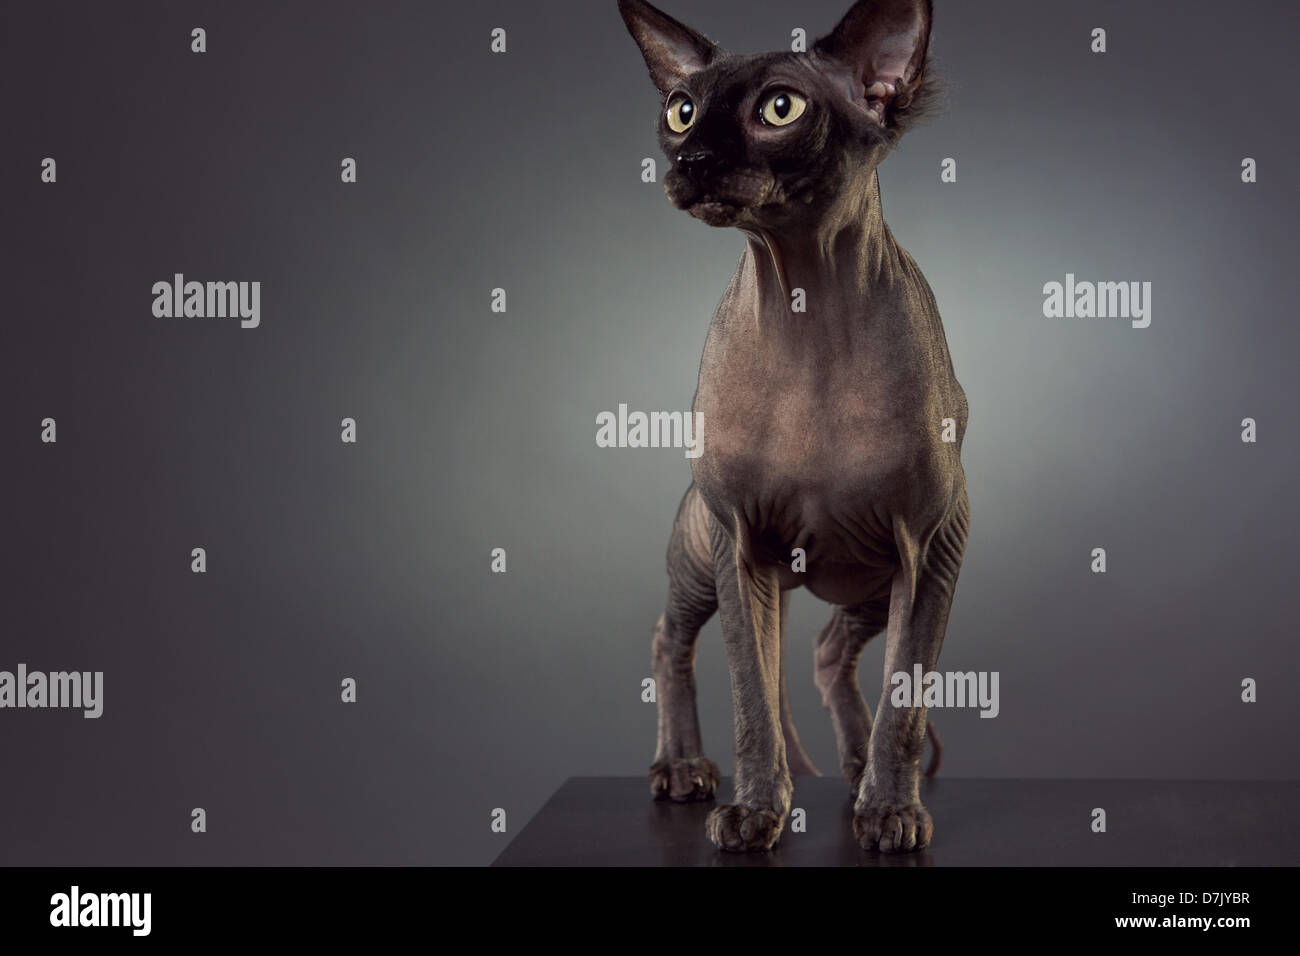 Portrait of hairless Sphinx cat in studio - Stock Image